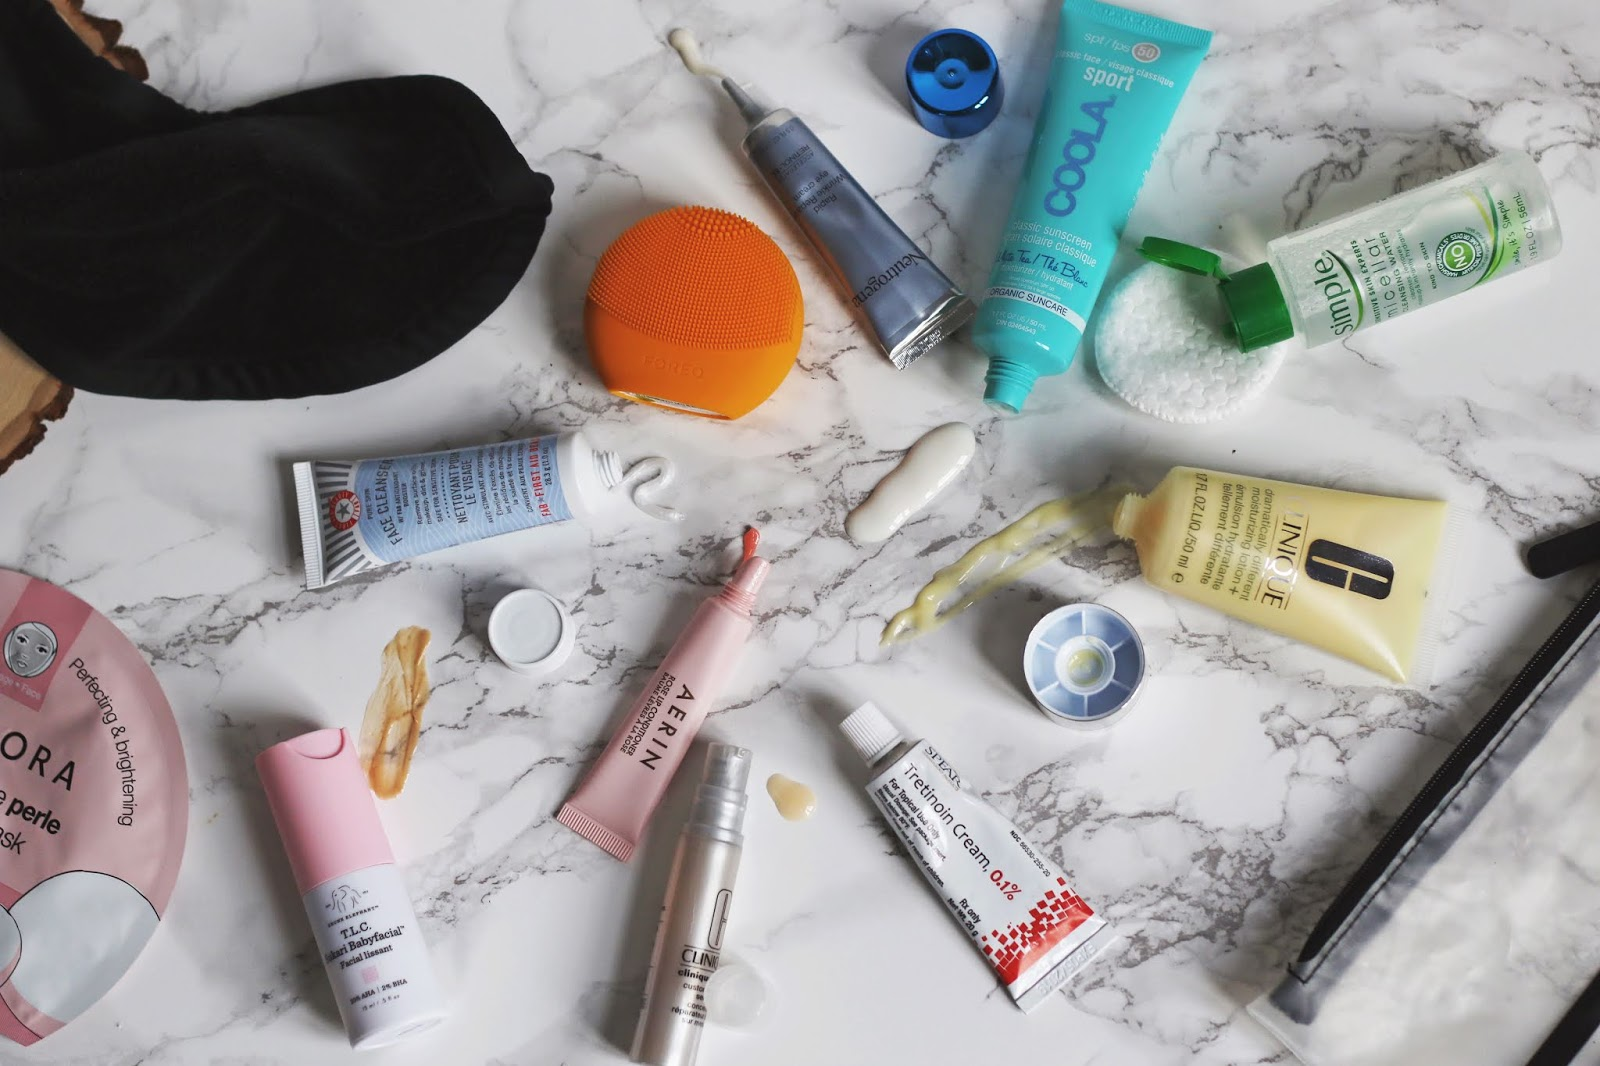 Take care of your skin when traveling, what to pack for skincare when traveling, travel sized skincare, mini skincare products, Drunk Elephant TLC Sukari Babyfacial, Sephora Collection Face Masks, Clinique Moisturizer, First Aid Beauty Cleanser, Foreo, Aerin Rose Lip Conditioner, Cotton Rounds, Simple Micellar Water